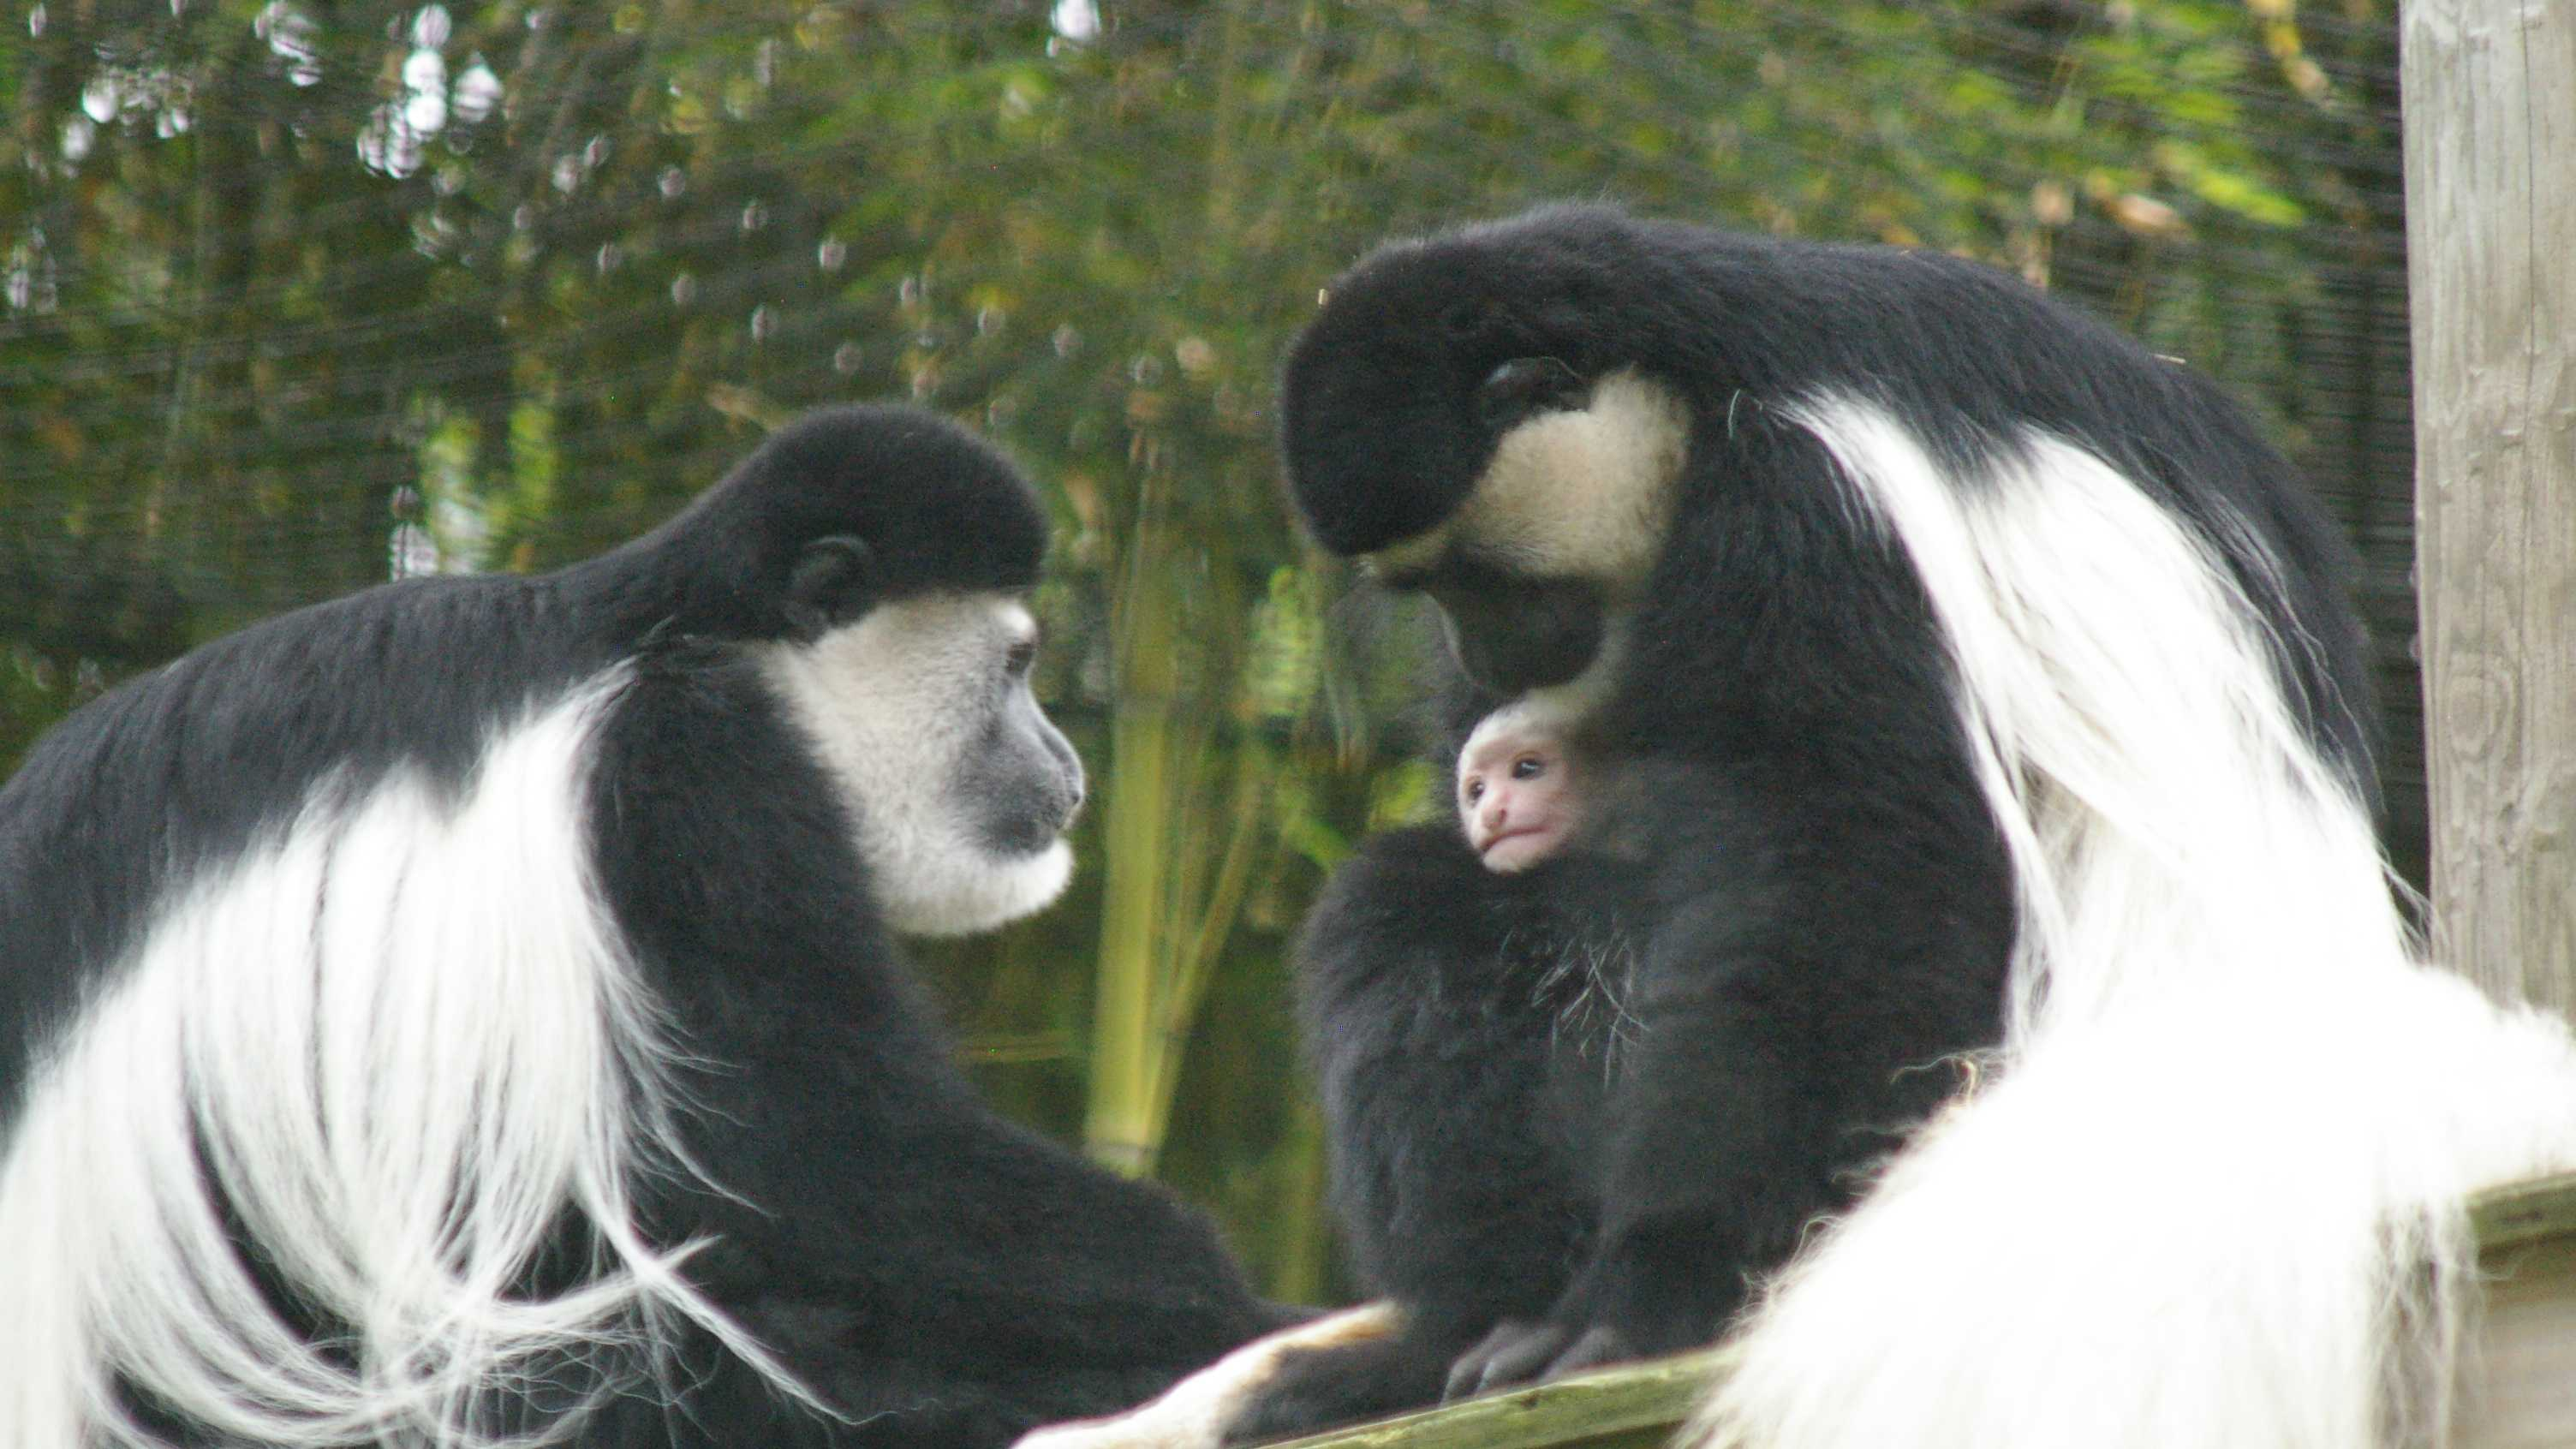 Two Eastern black-and-white colobus monkeys were born at the Stone Zoo in June 2013. The first baby was born on Sunday, June 23 to Mahale, age 12, and Isoke, age 7.